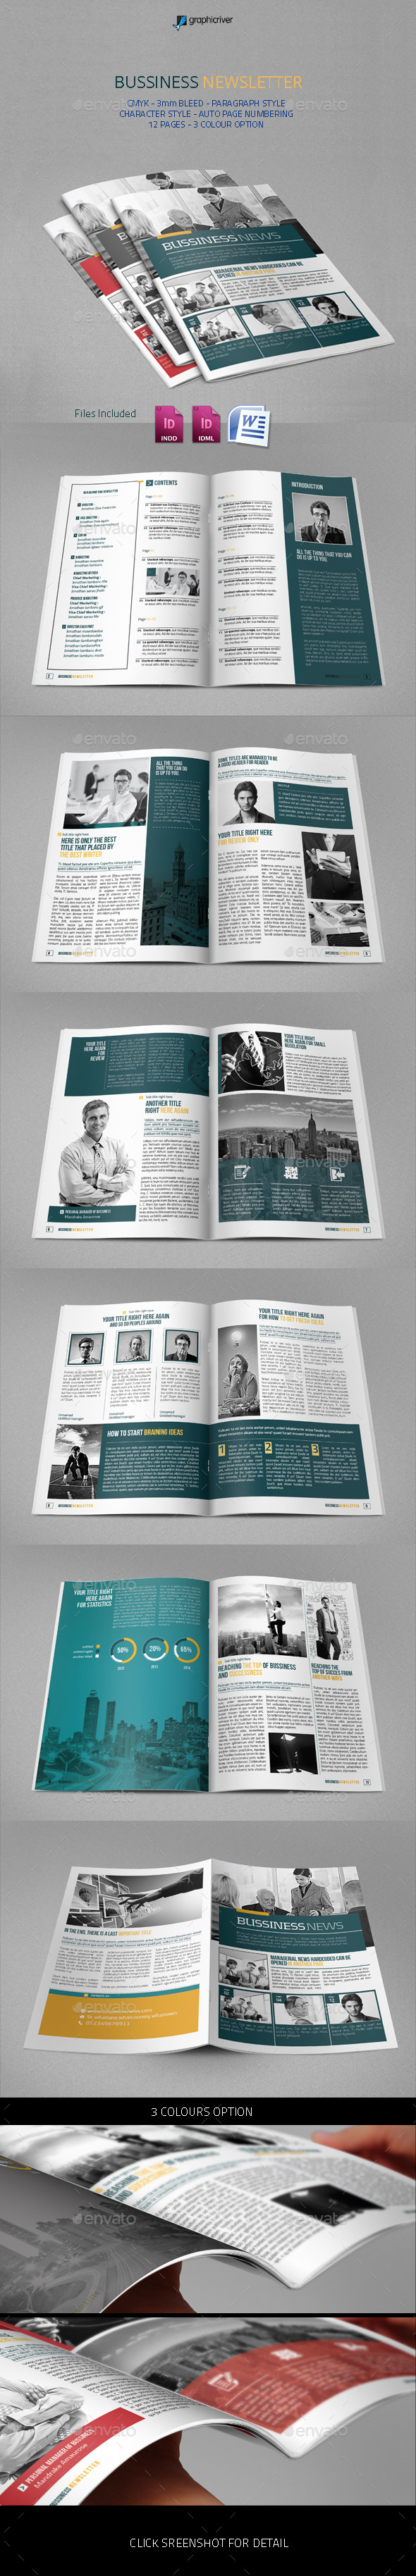 GraphicRiver Bussiness Newsletter 9164406